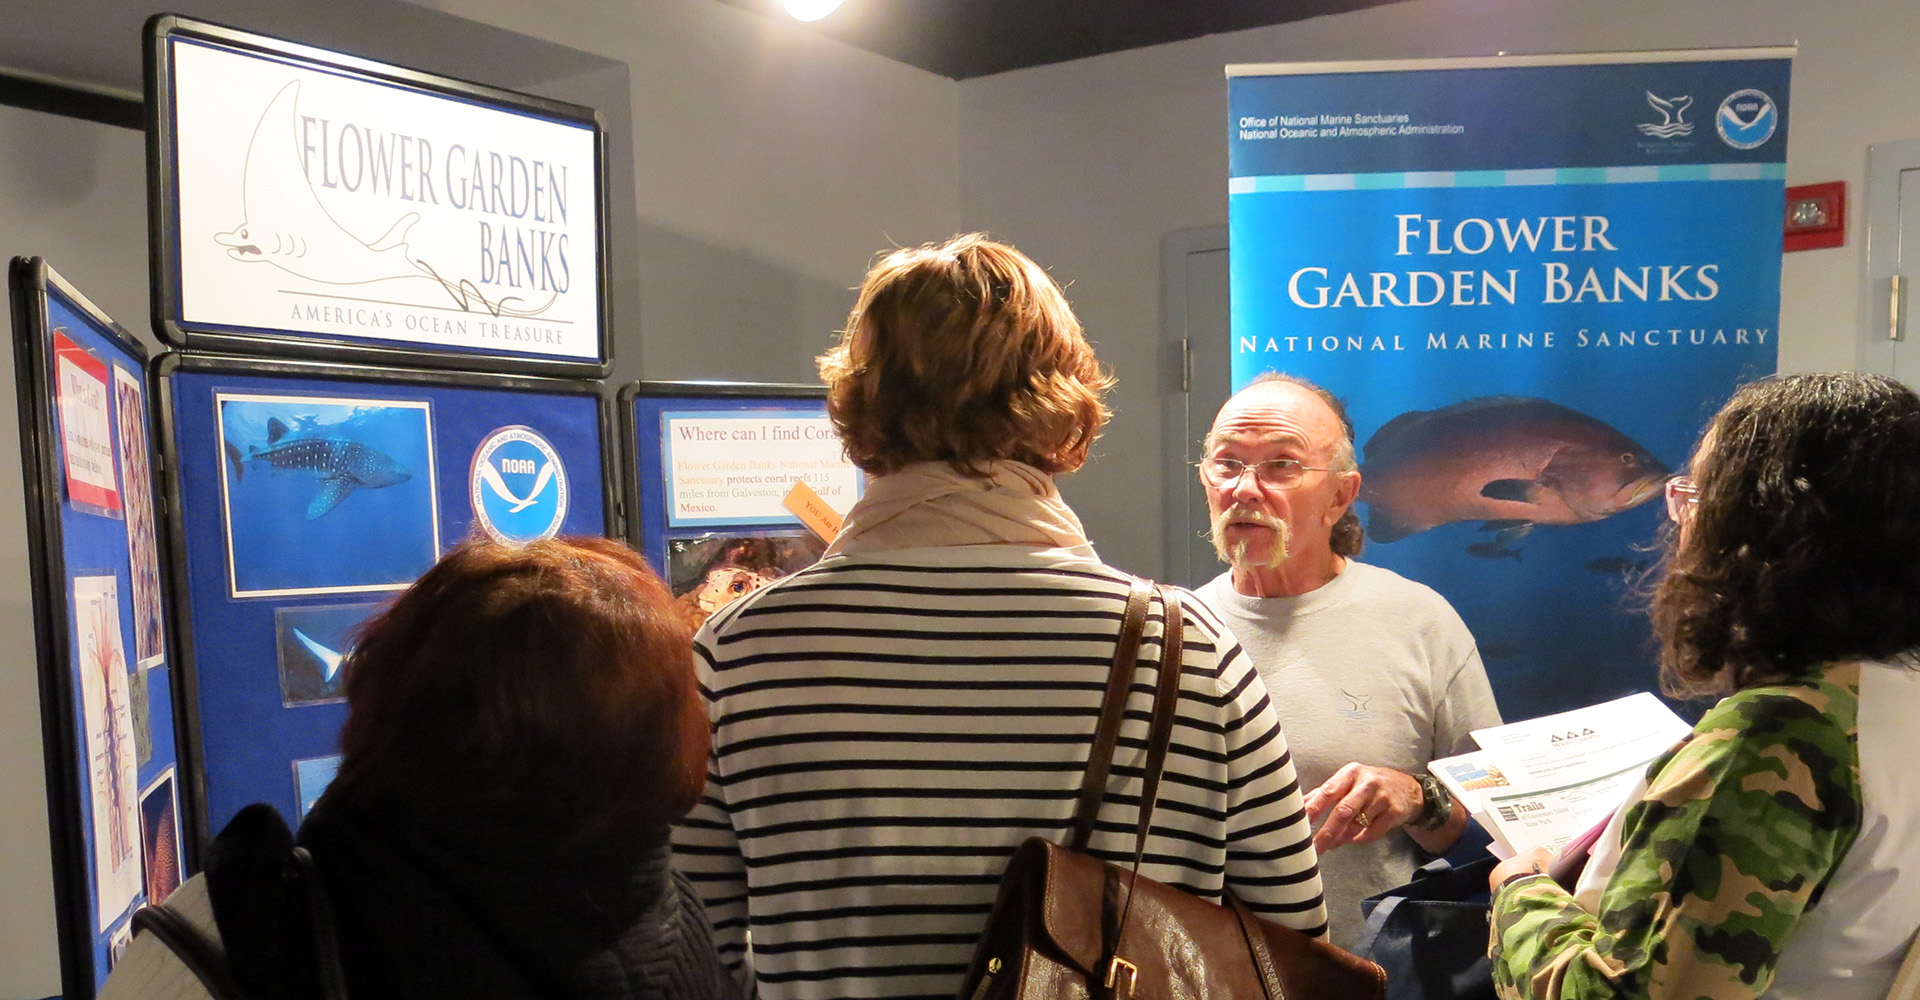 Volunteer talking to visitors at a sanctuary display booth